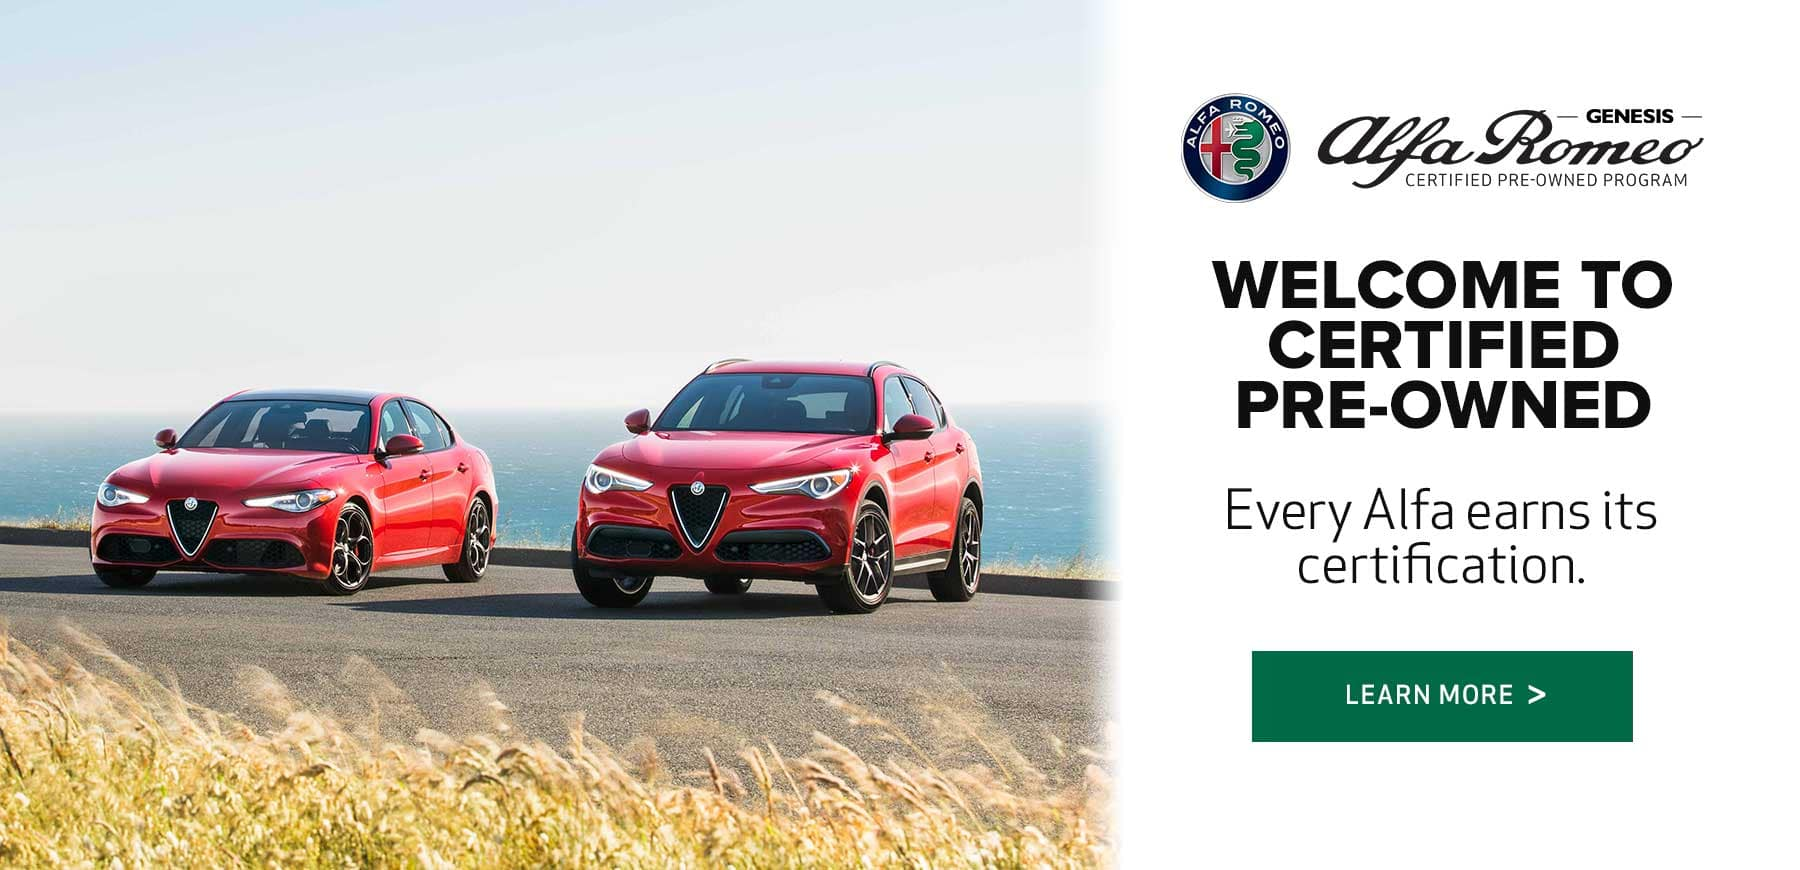 Genesis Alfa Romeo Certified Pre-Owned Program